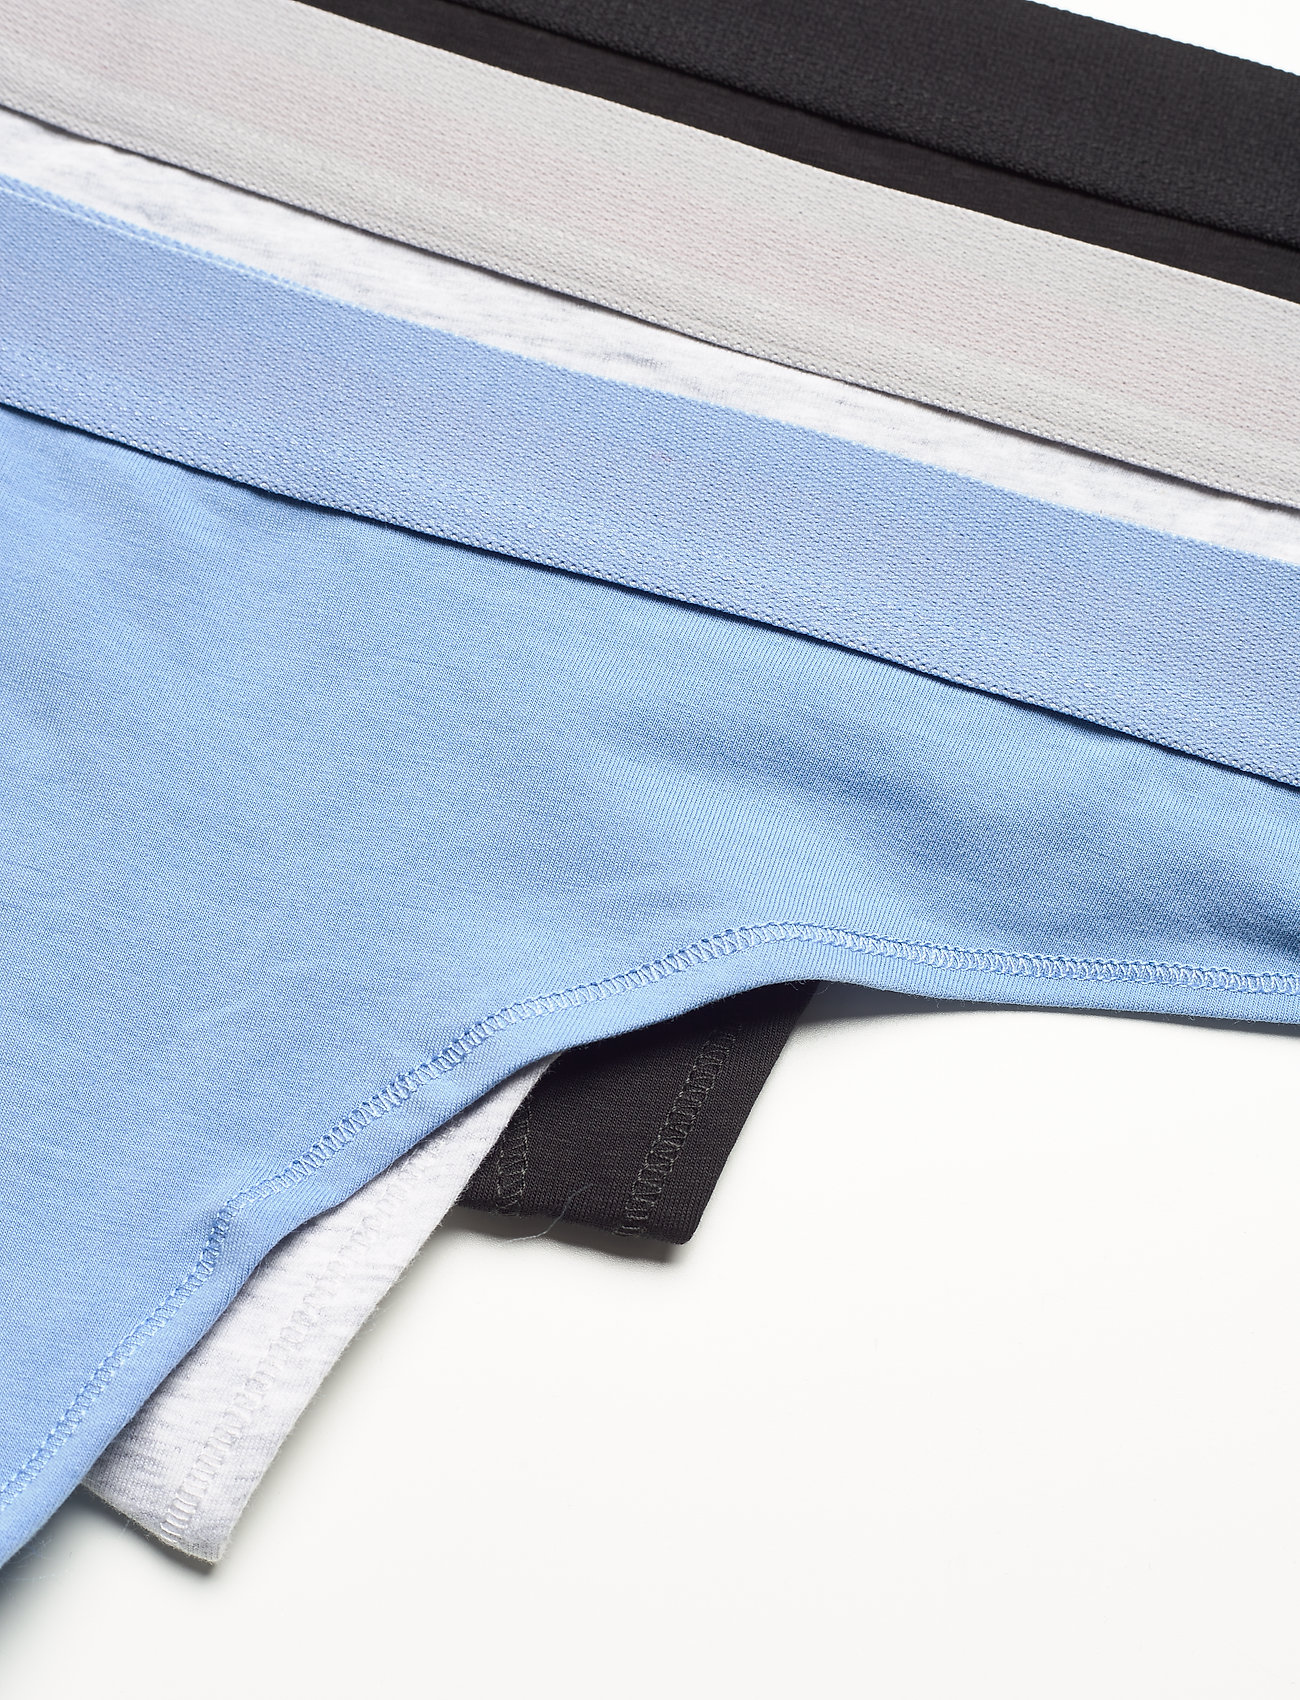 Danish Endurance - Organic Cotton Thong 3-pack - slips - multicolor (1x black, 1x grey mélange, 1x light blue) - 1